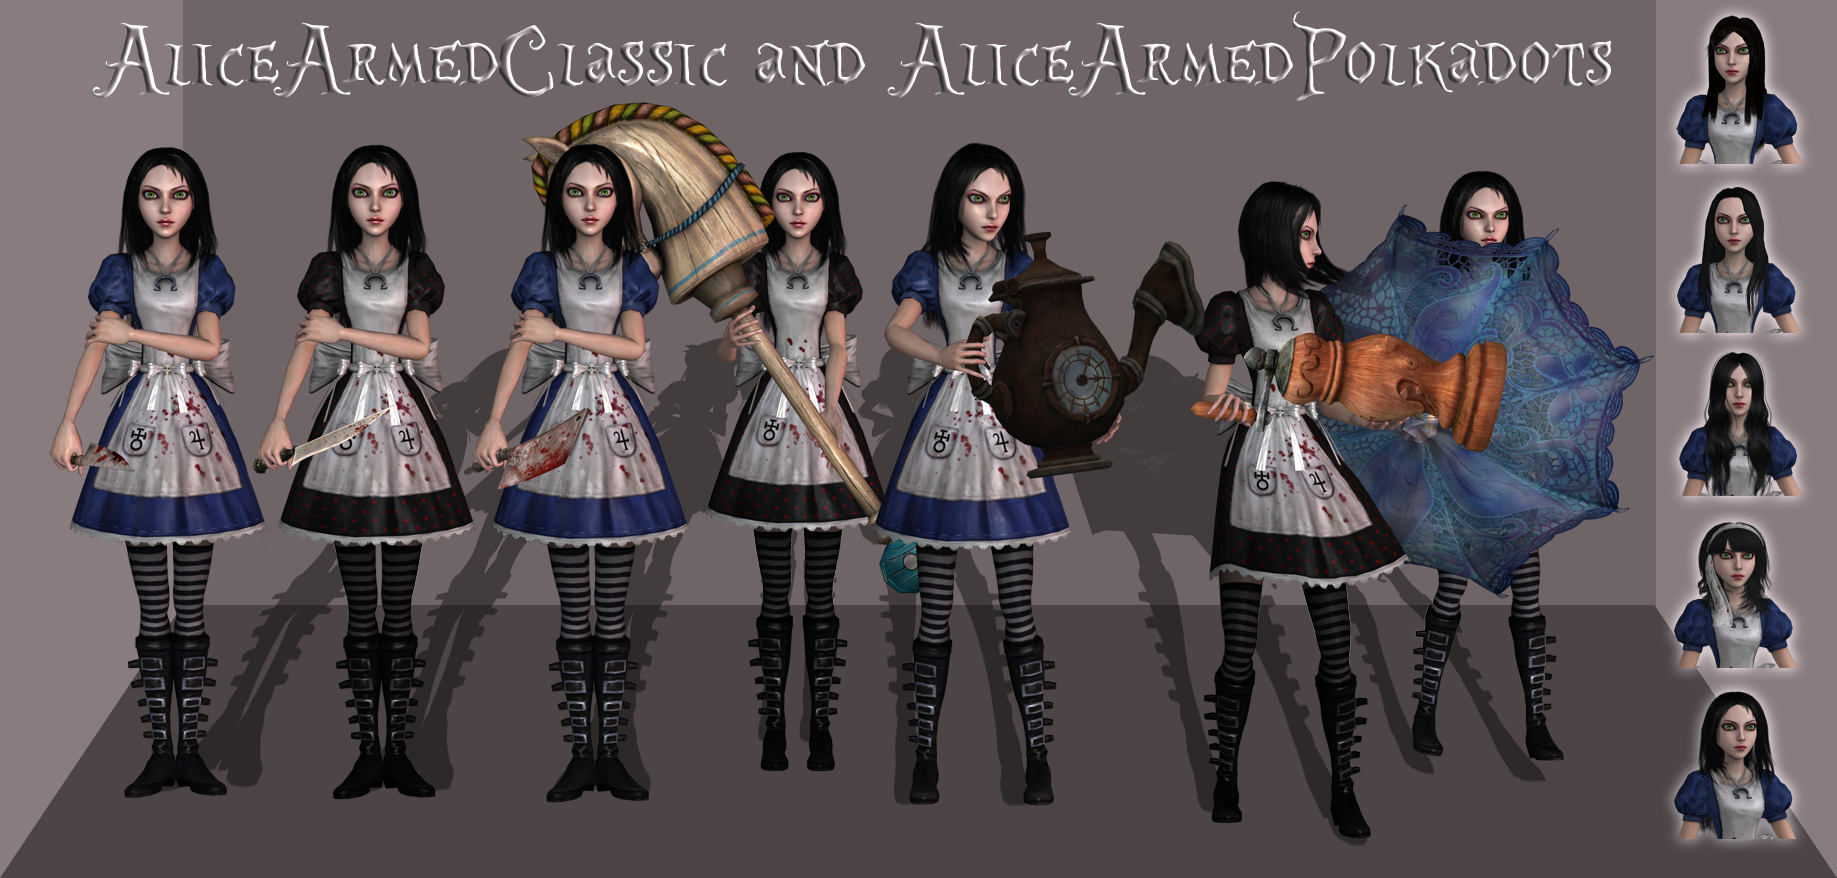 AliceArmedClassic and AliceArmedPolkadots release by tombraider4ever